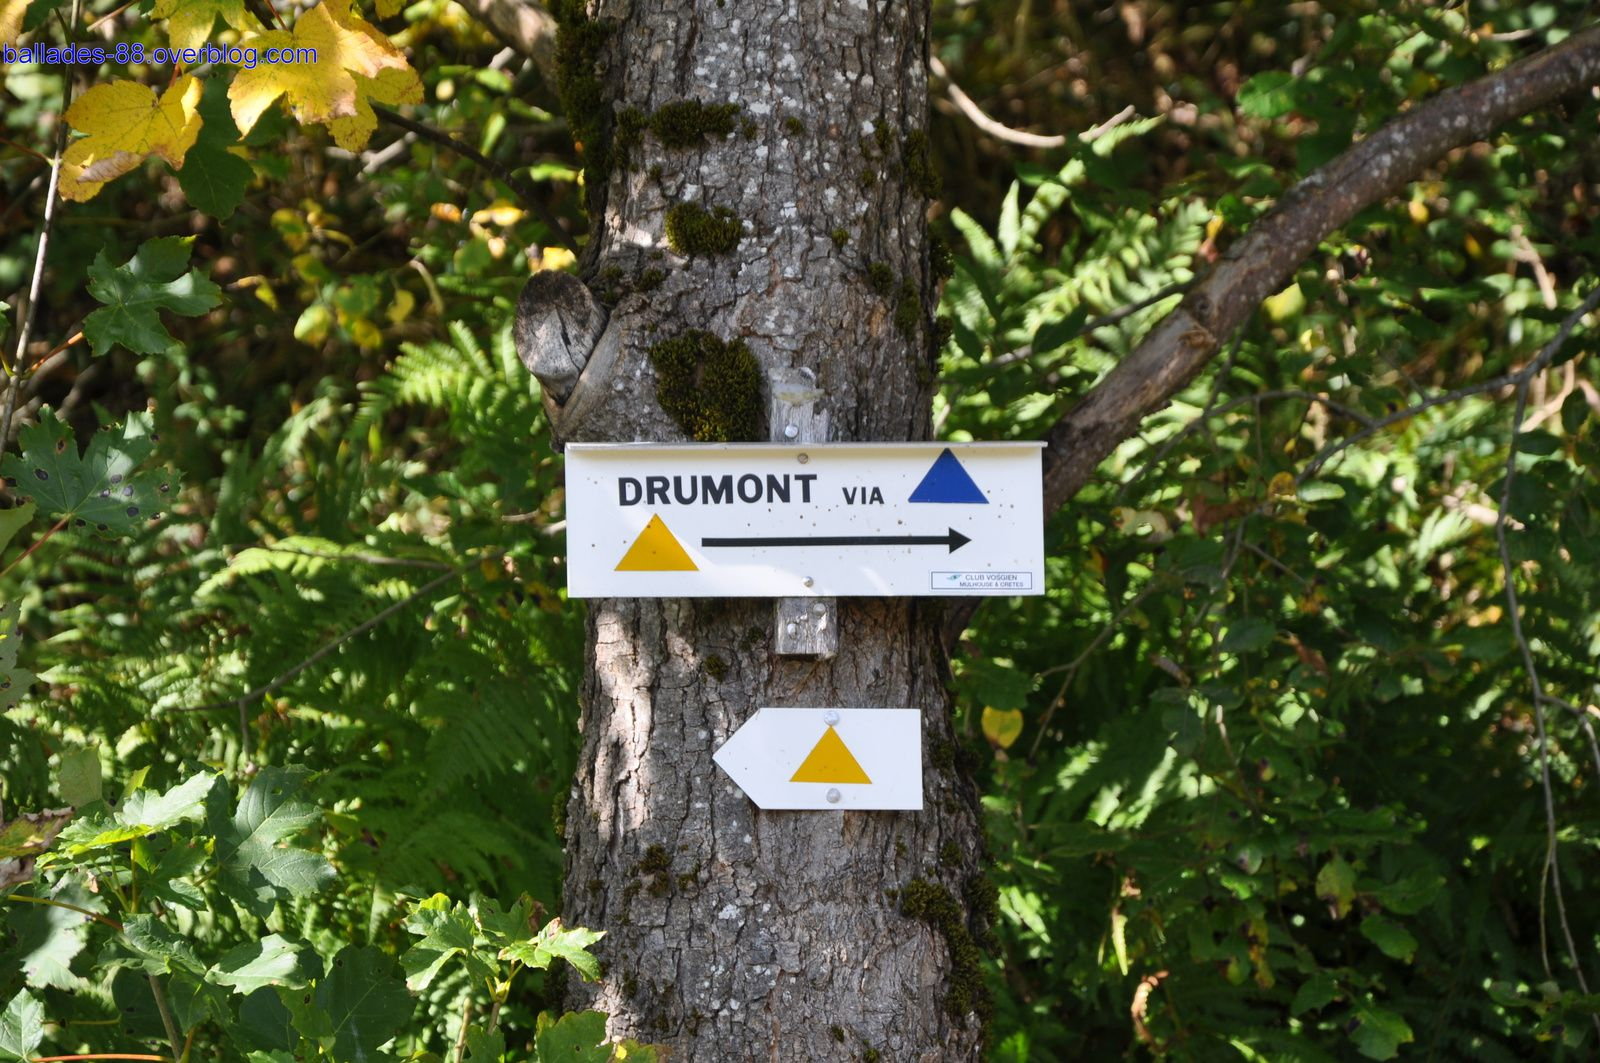 Col de Bussang/Gustiberg/Drumont.